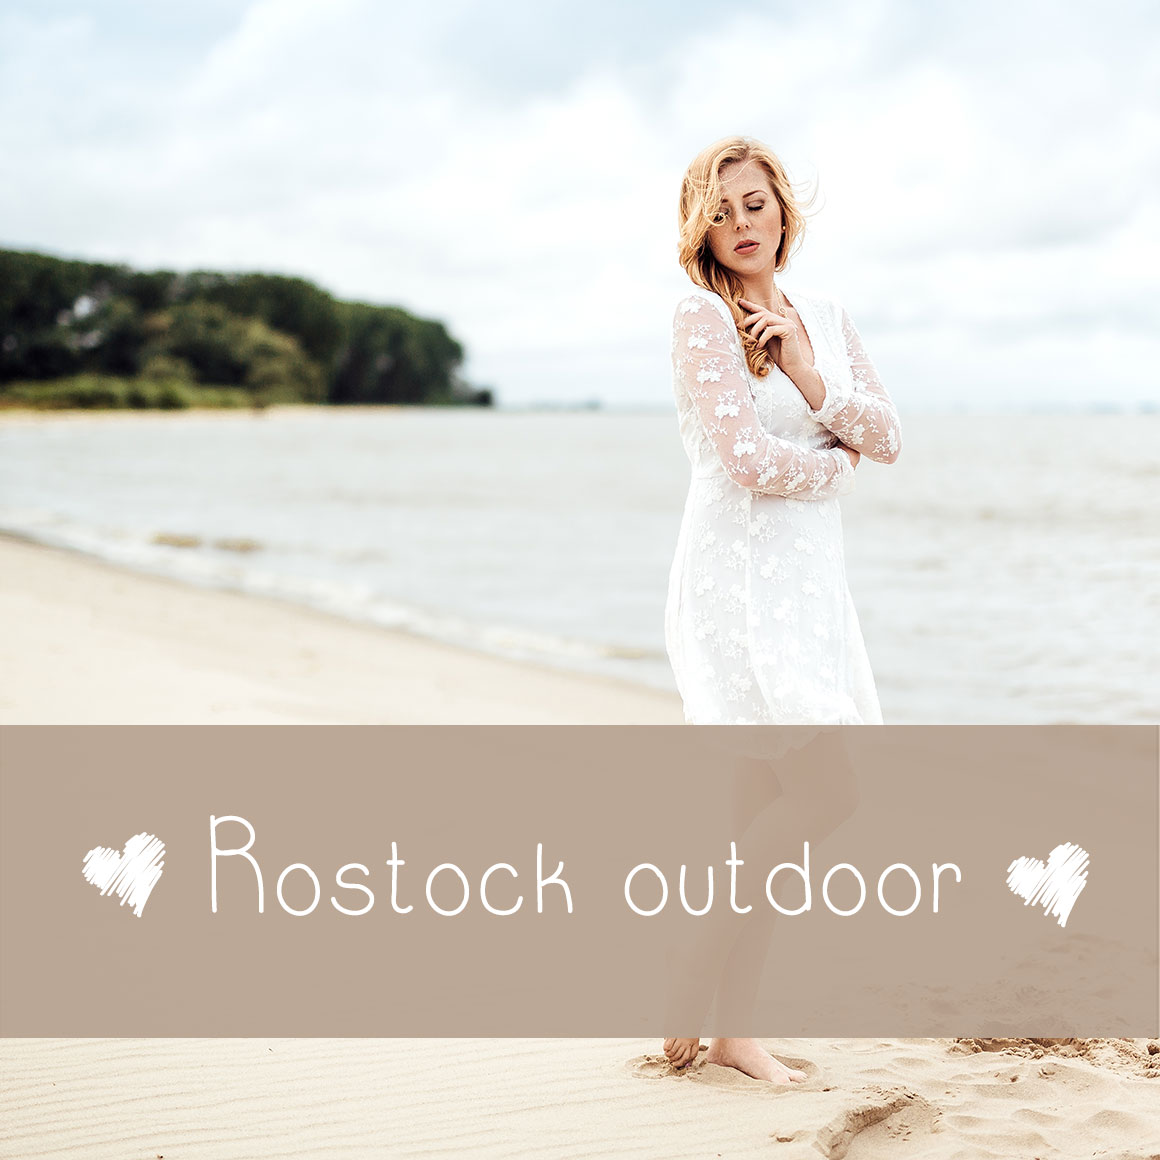 emotionale portraits outdoor am strand nina schnitzenbaumer fotografie. Black Bedroom Furniture Sets. Home Design Ideas